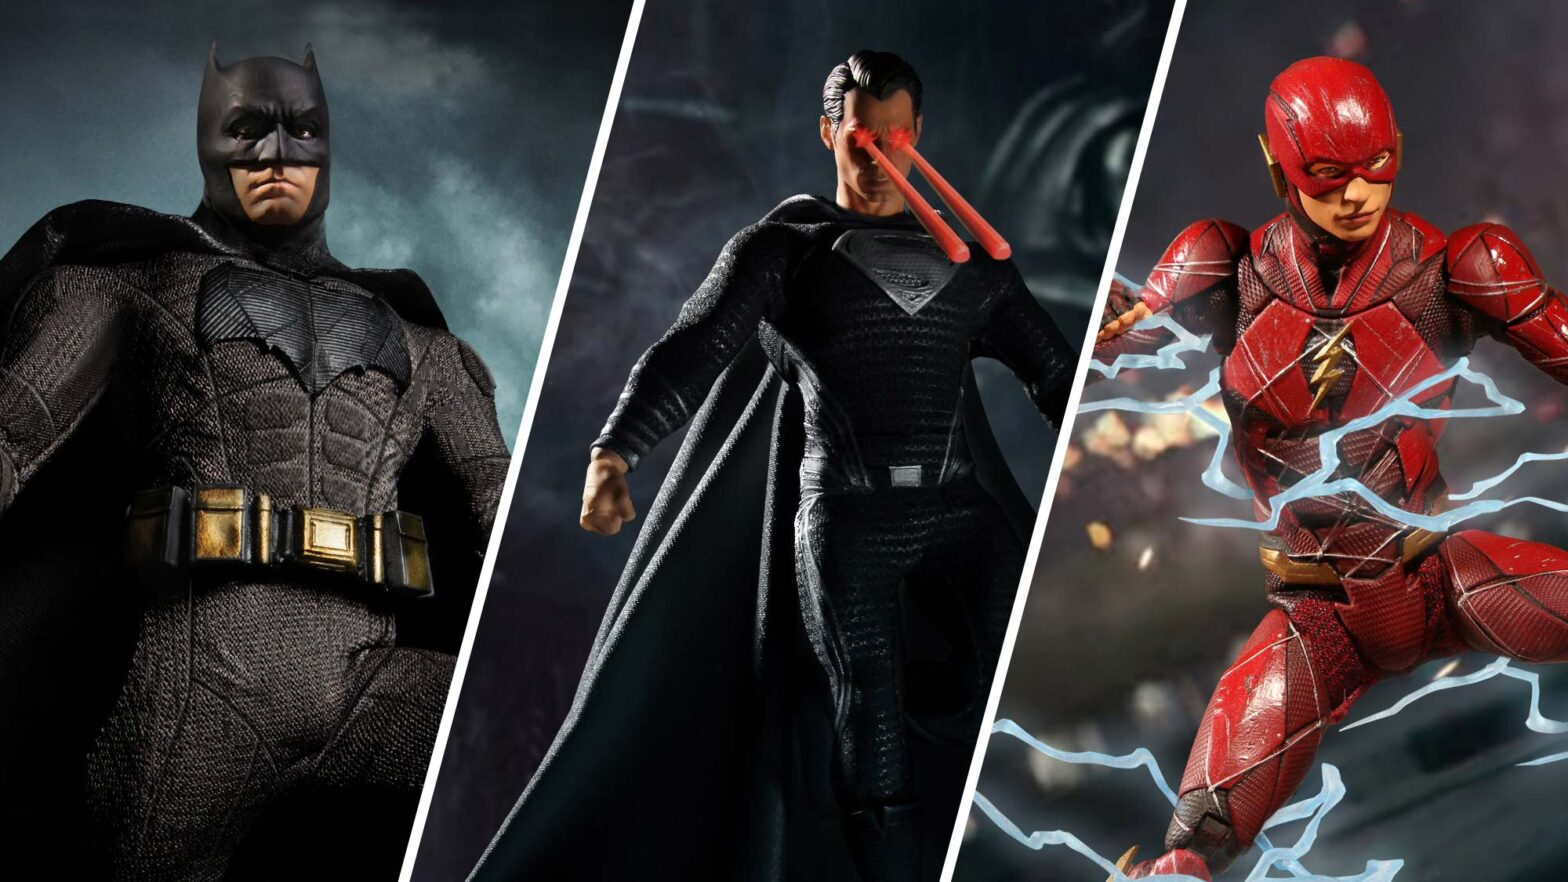 Zack Snyder's Justice League Boxed Set